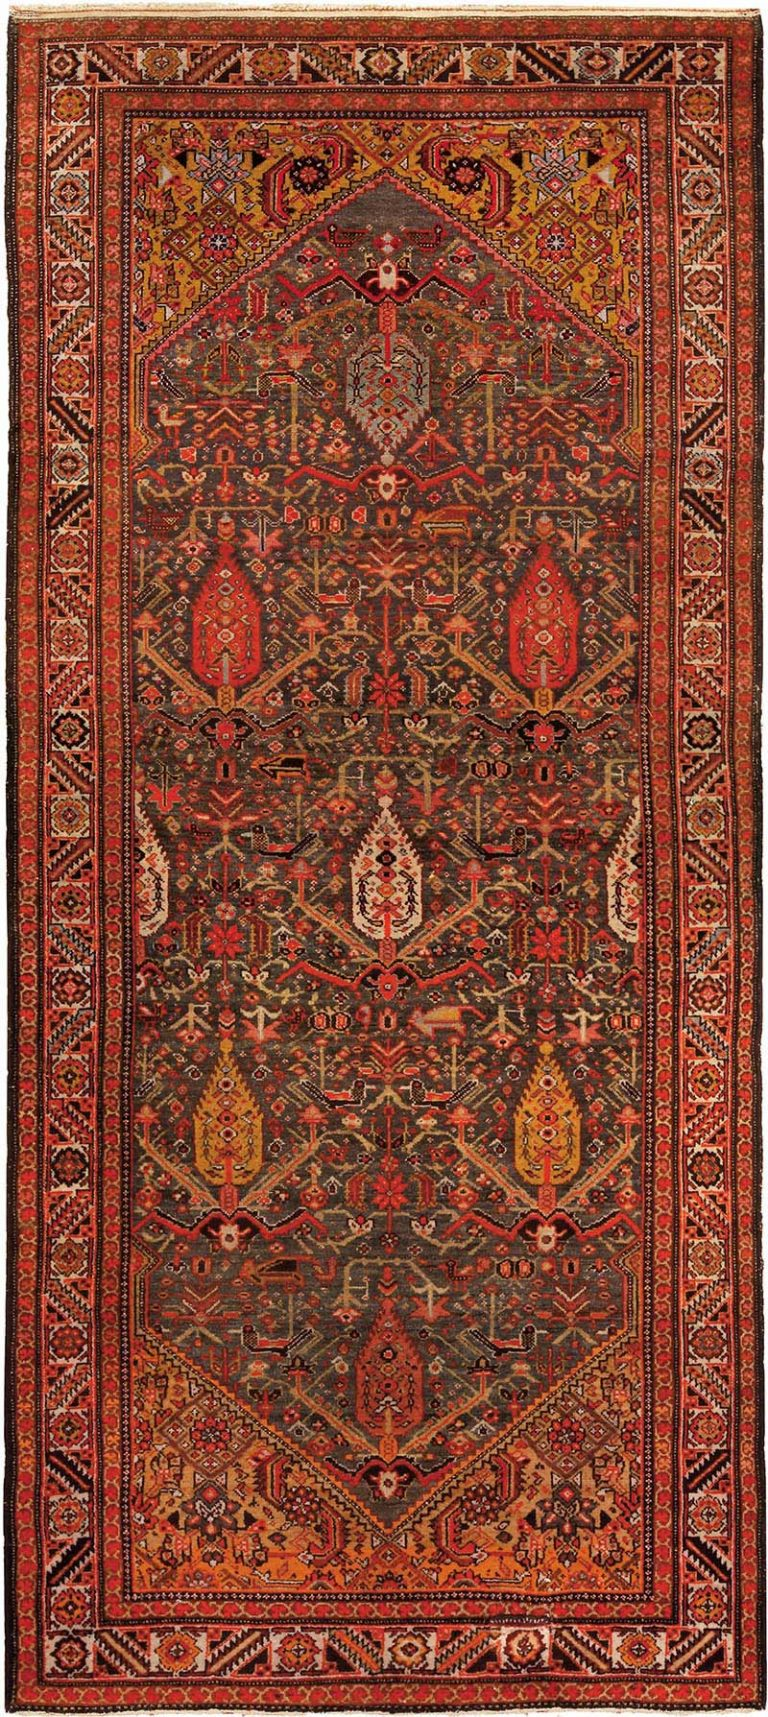 """Dughi – The """"Living Coral"""" of Antique Sarouk Rugs"""